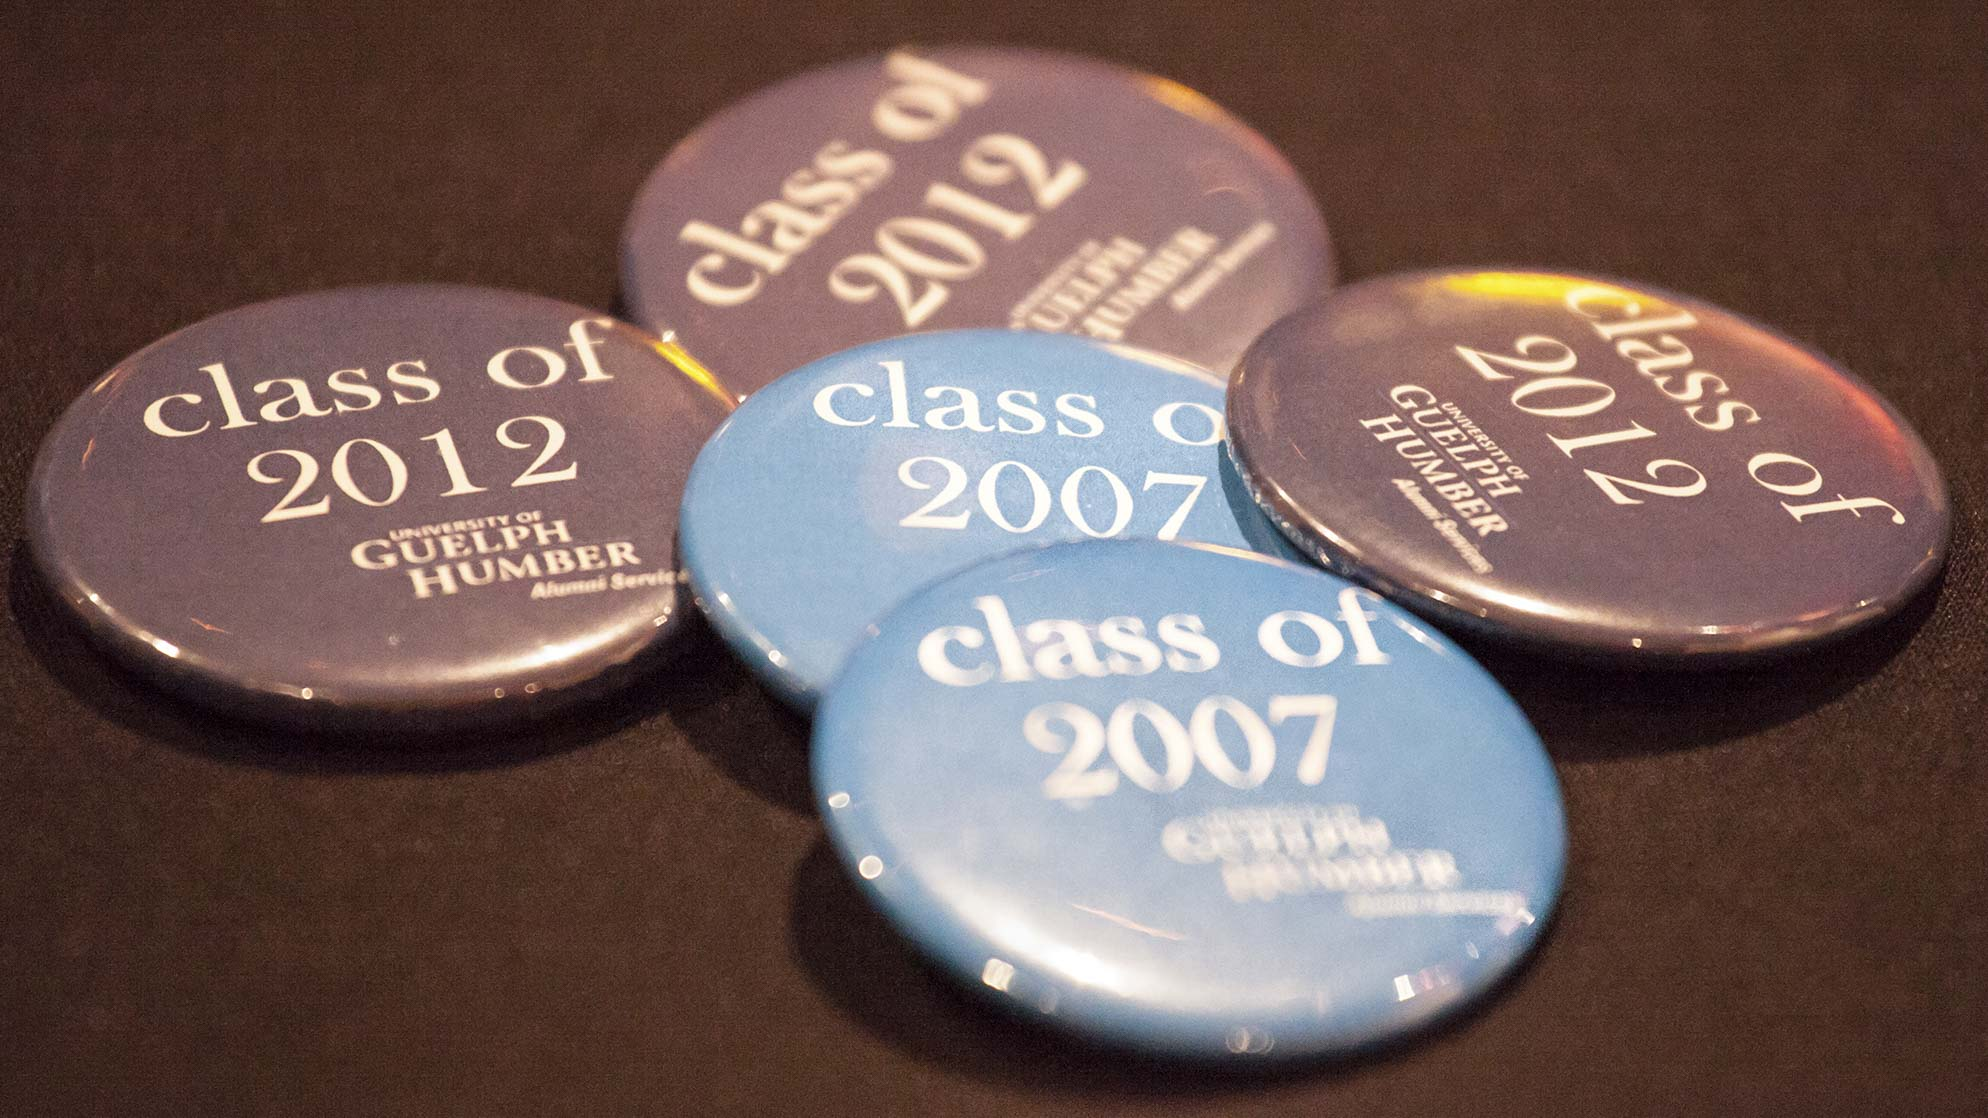 A pile of Class of 2007 and Class of 2012 buttons